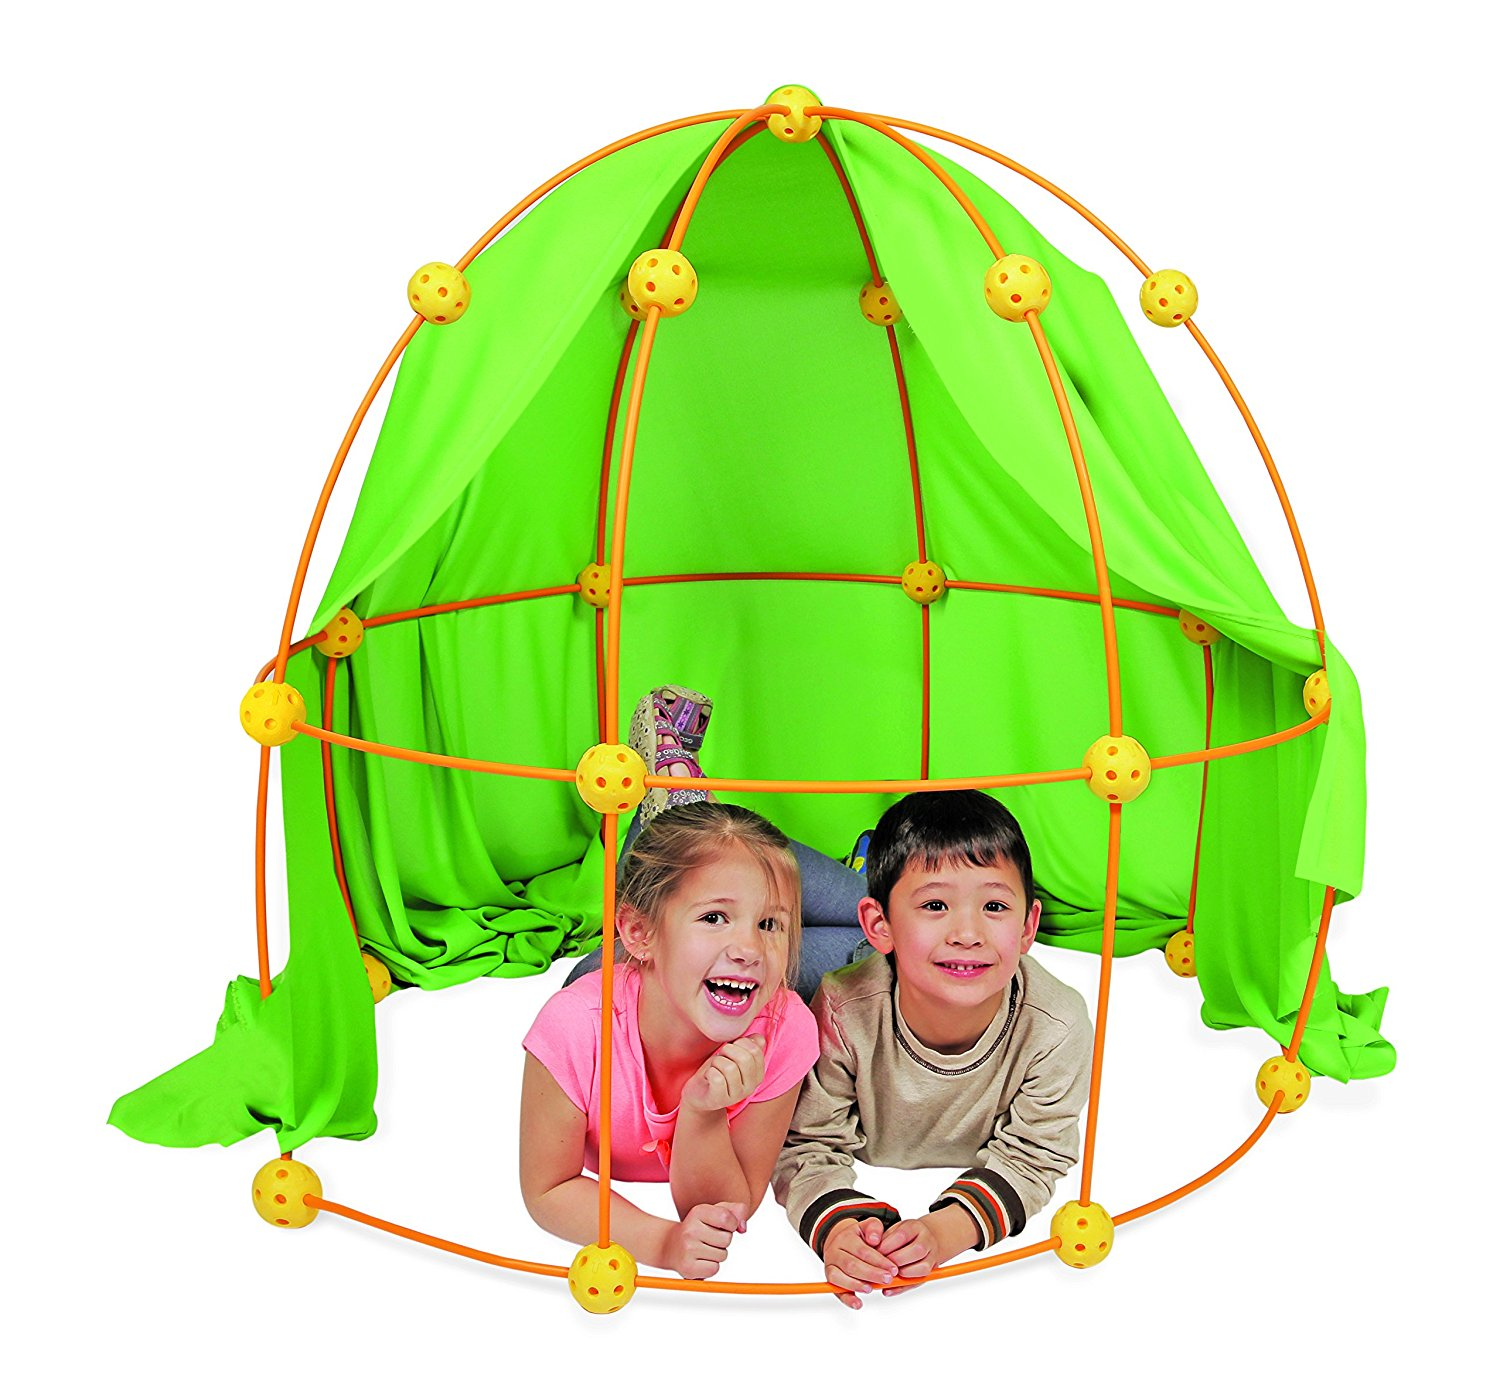 flexi fort with kids playing  sc 1 st  FamilyEducation & 5 Coolest Play Tents for Kids - FamilyEducation